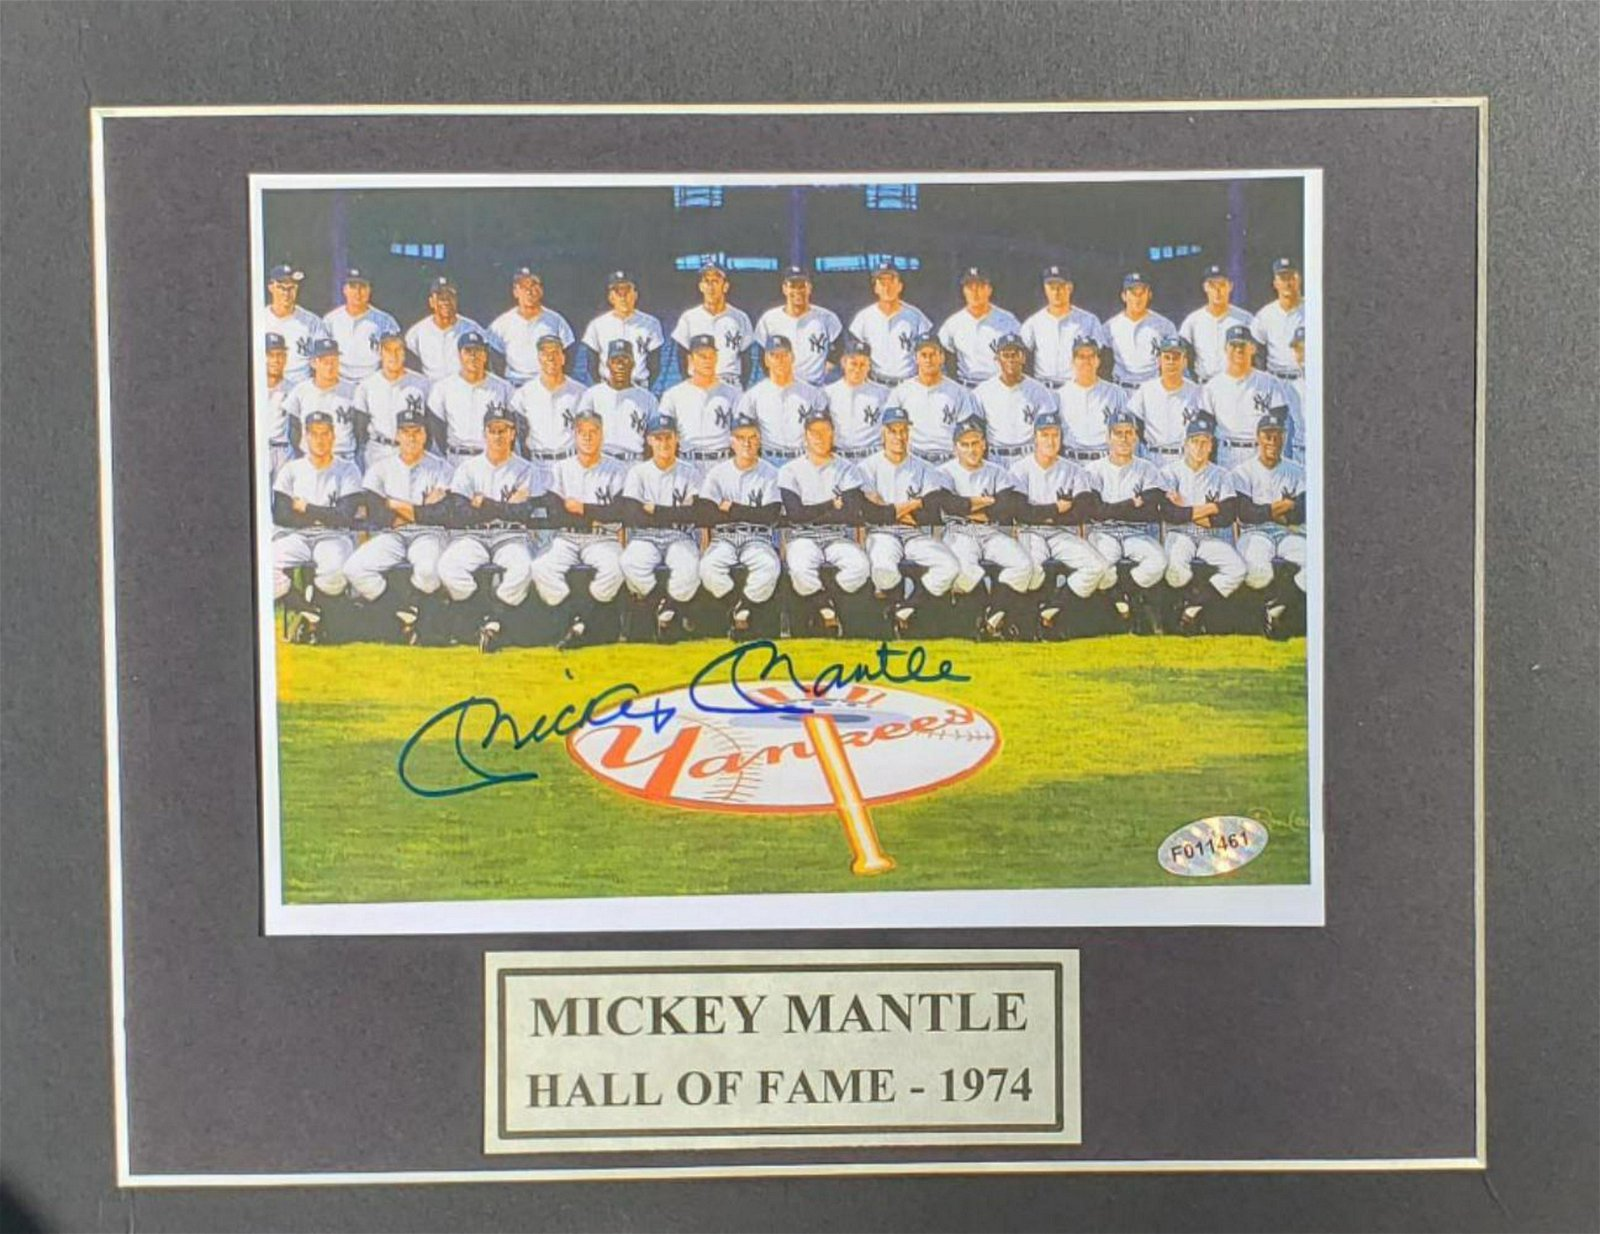 Mickey Mantle. Autographed 8x10 photo